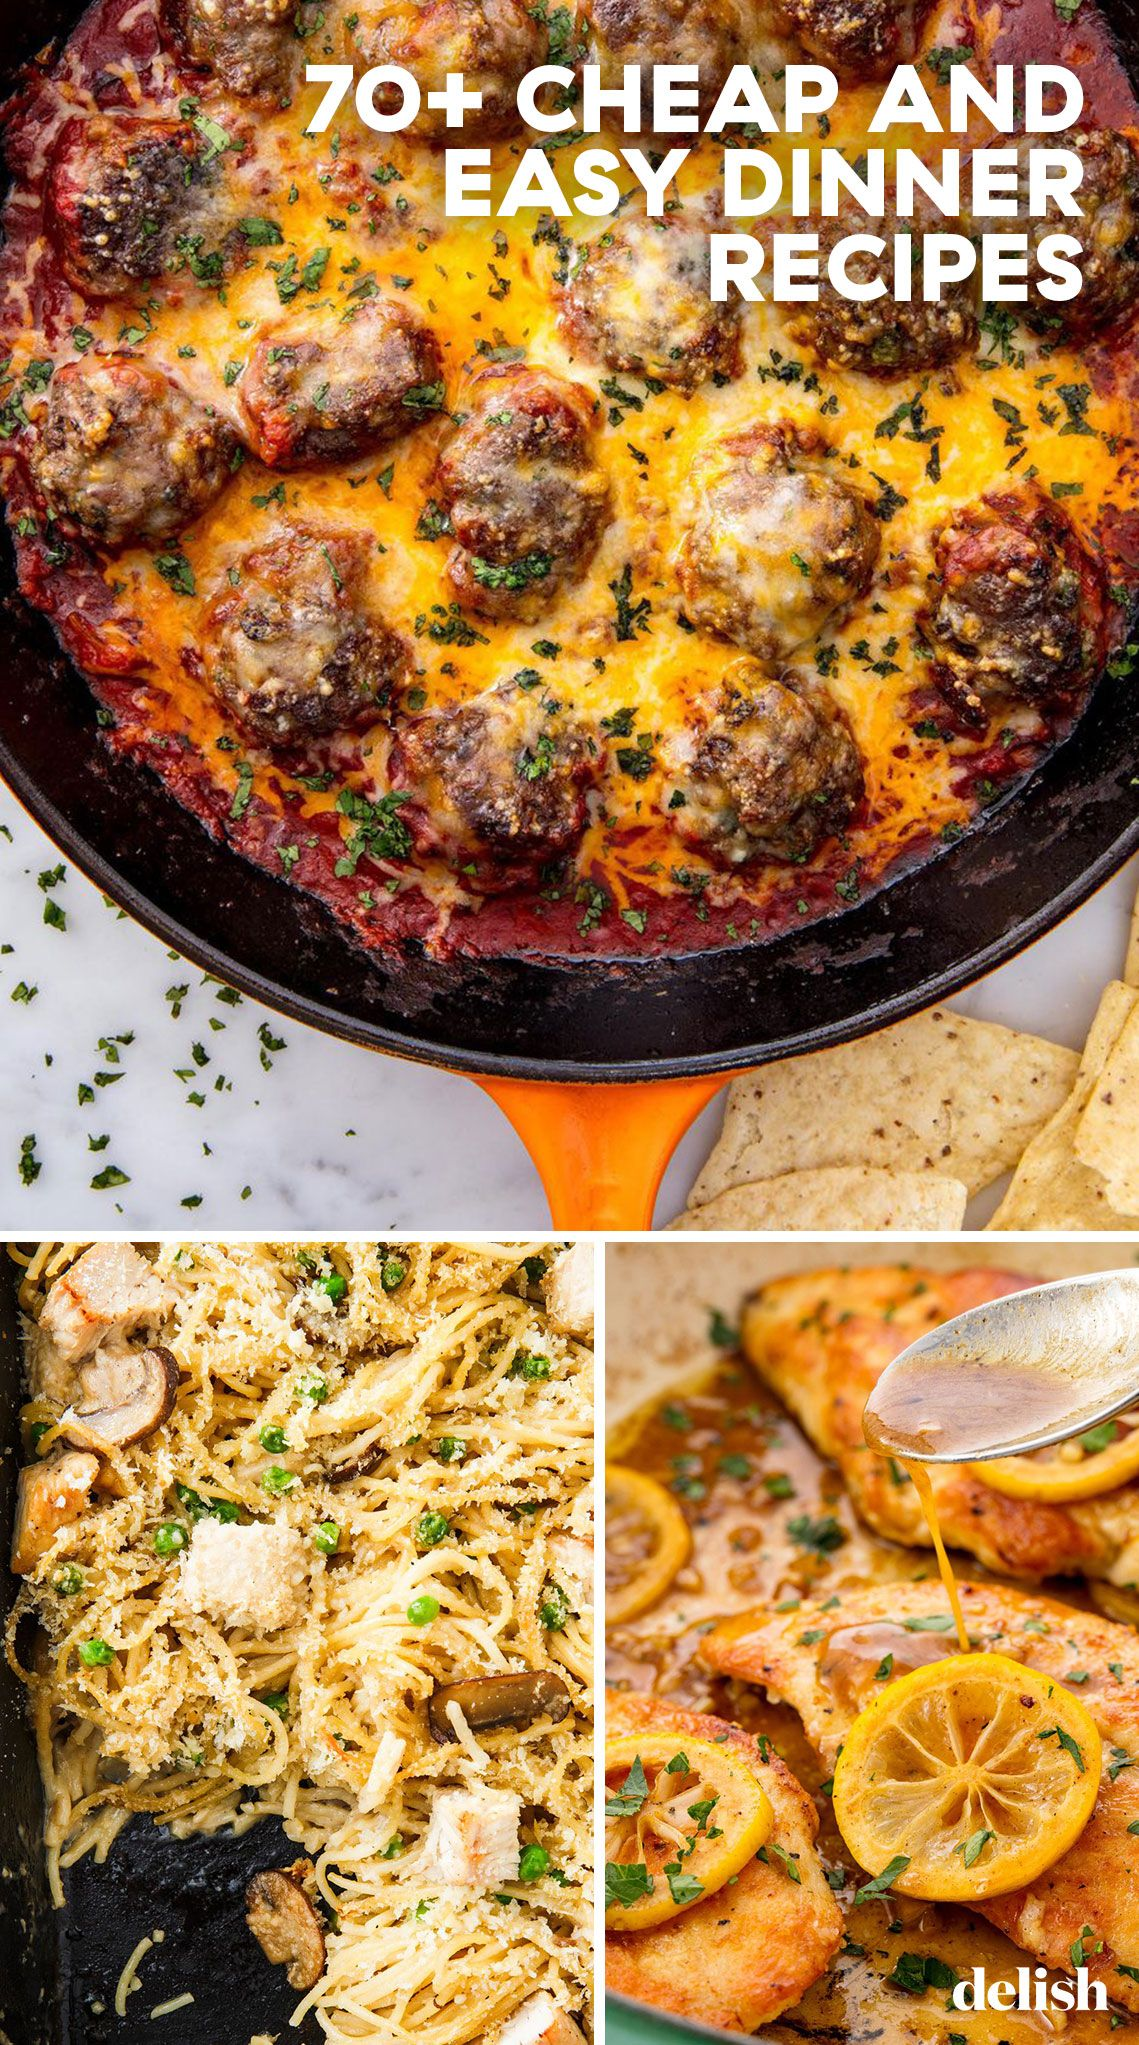 70+ Easy Cheap Dinner Recipes - Inexpensive Dinner Ideas